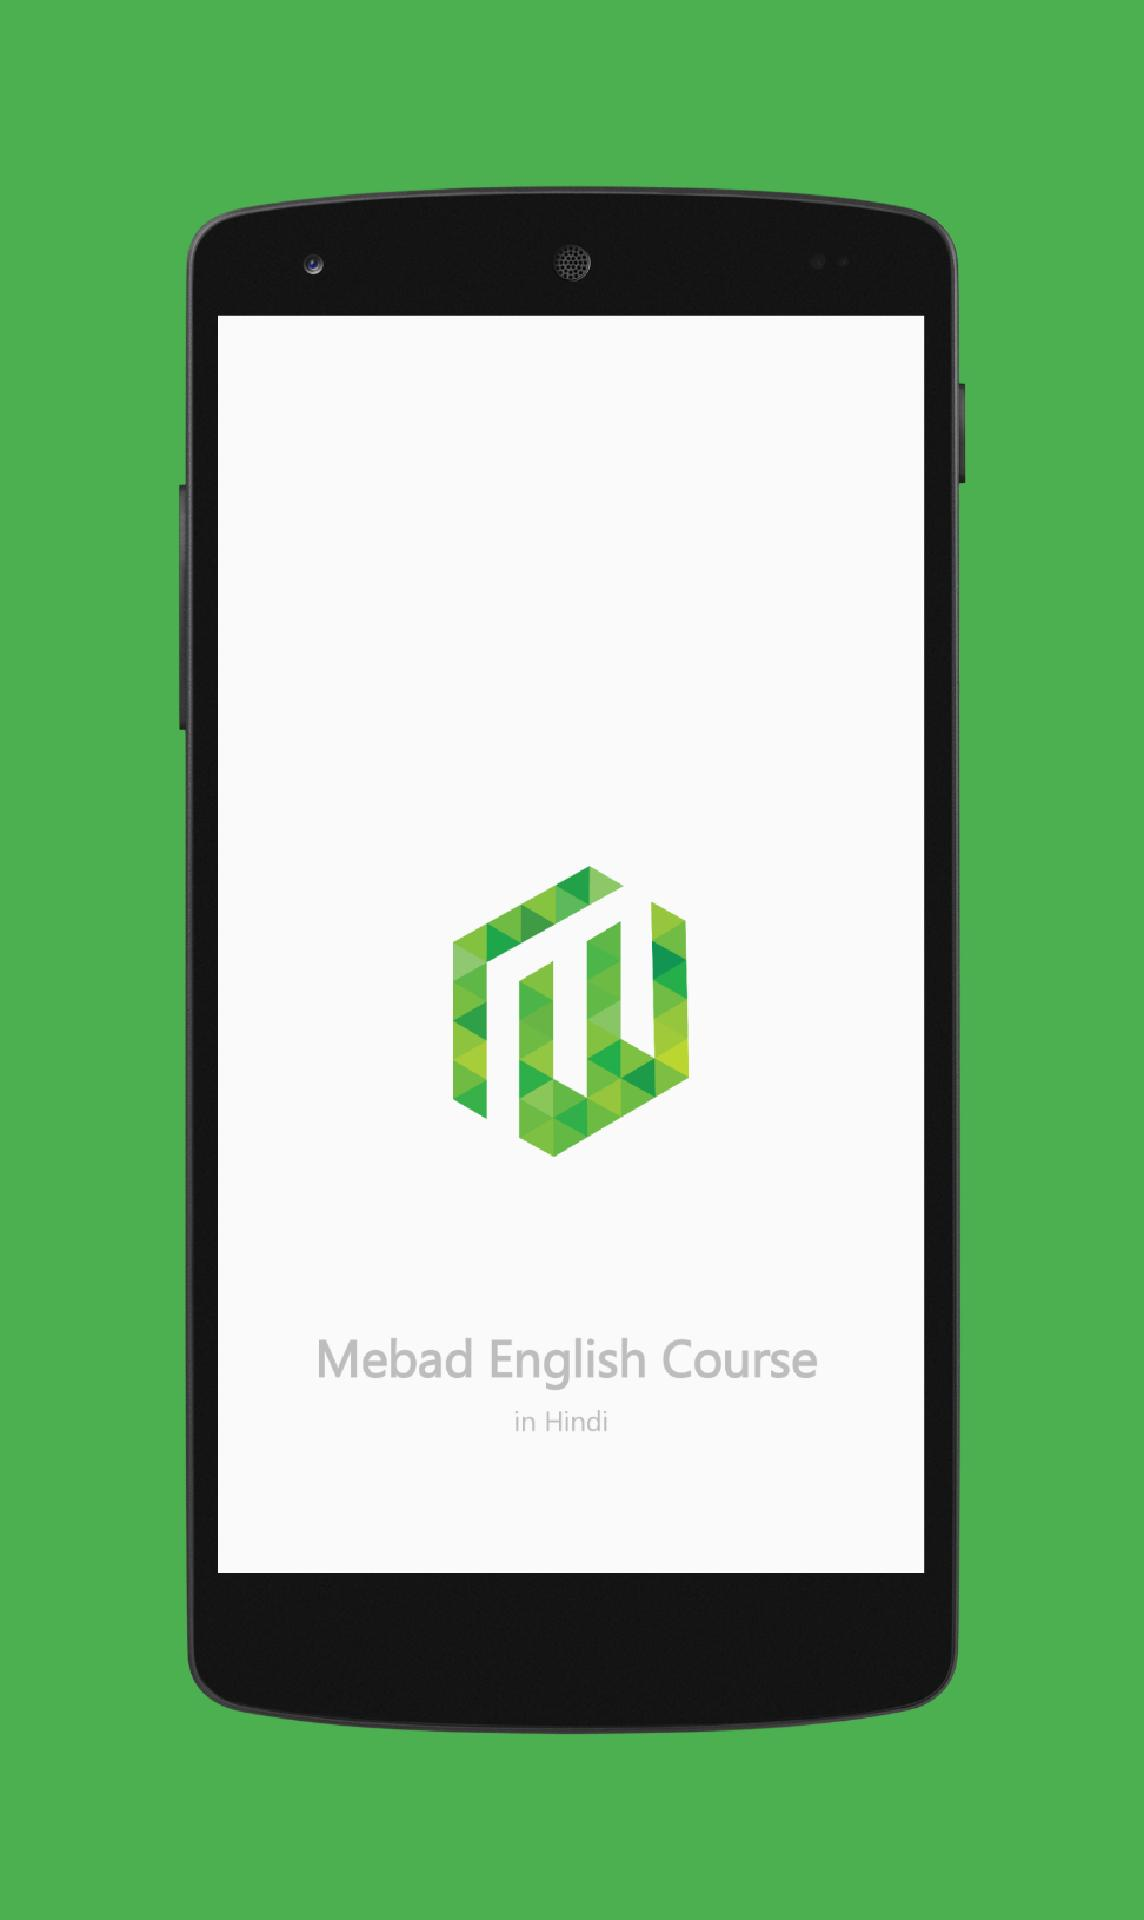 English Speaking Course in Hindi for Android - APK Download